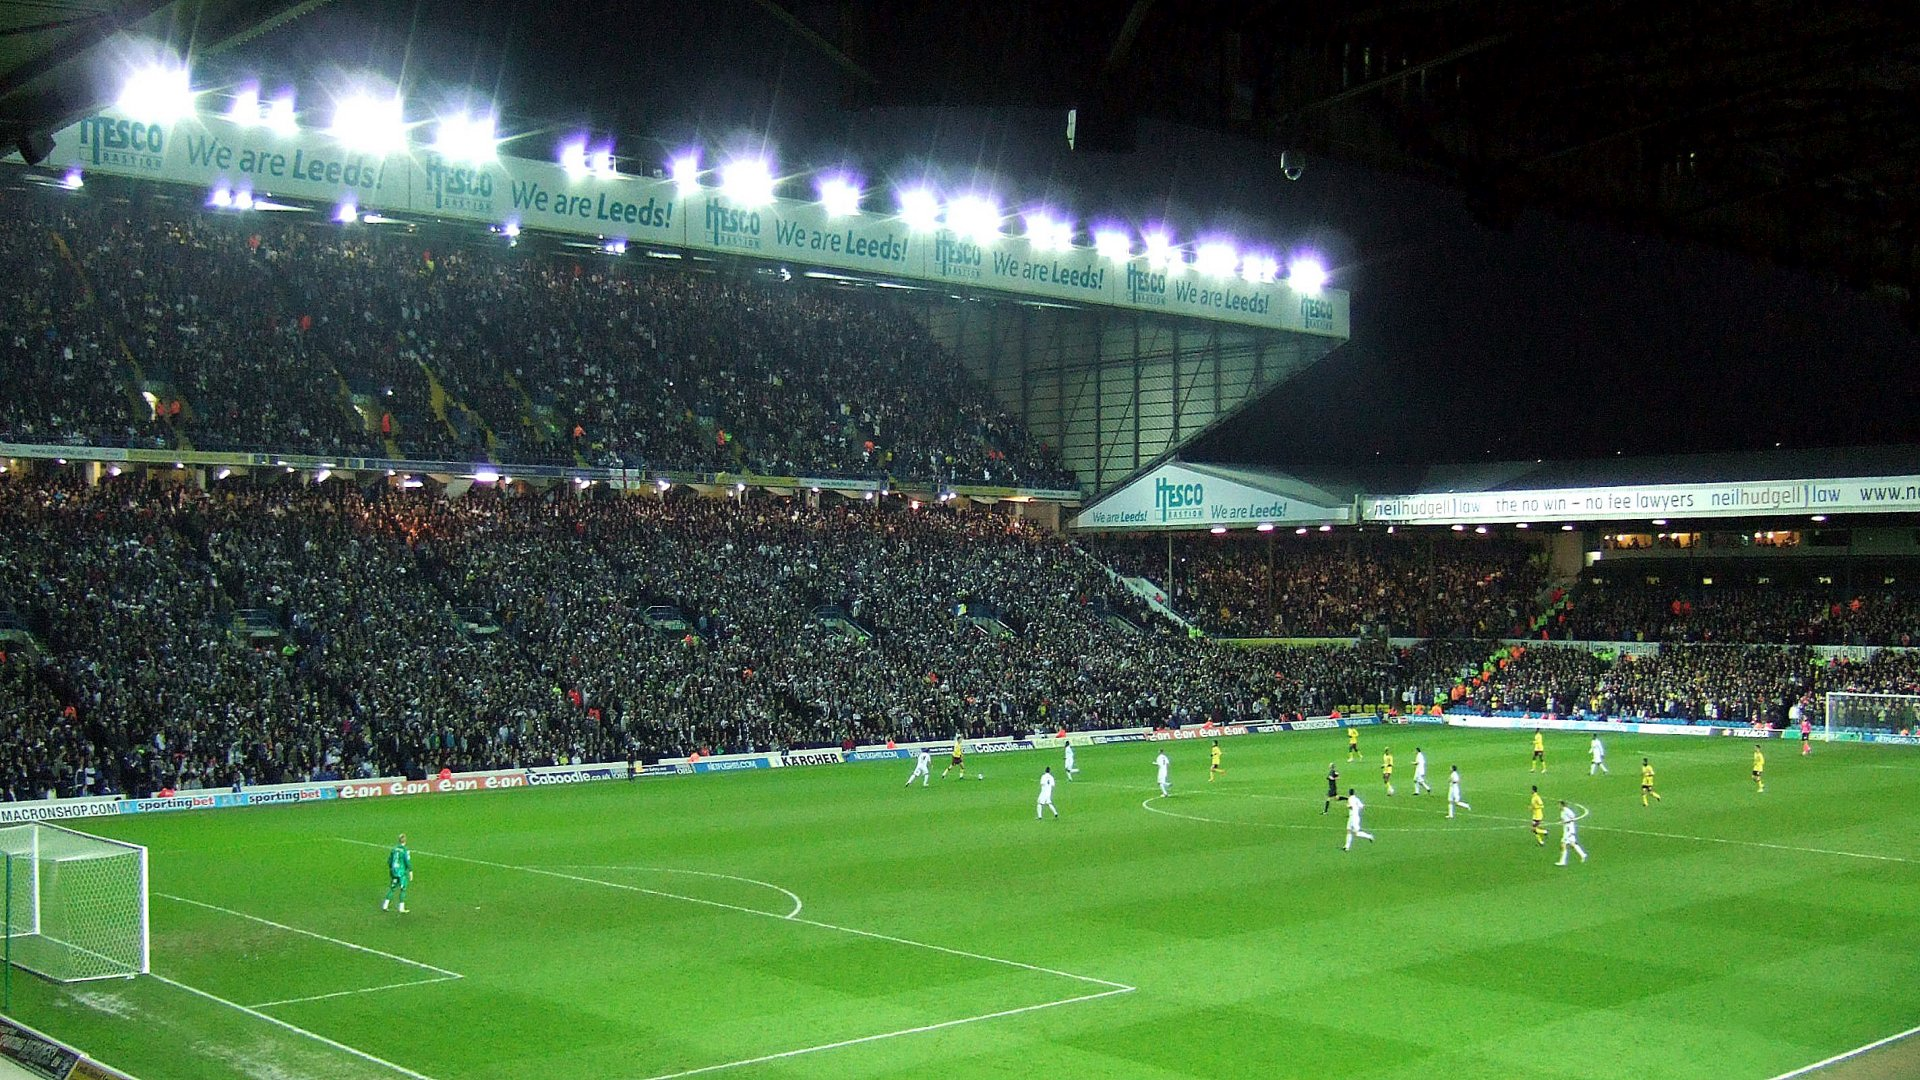 leeds united - photo #36